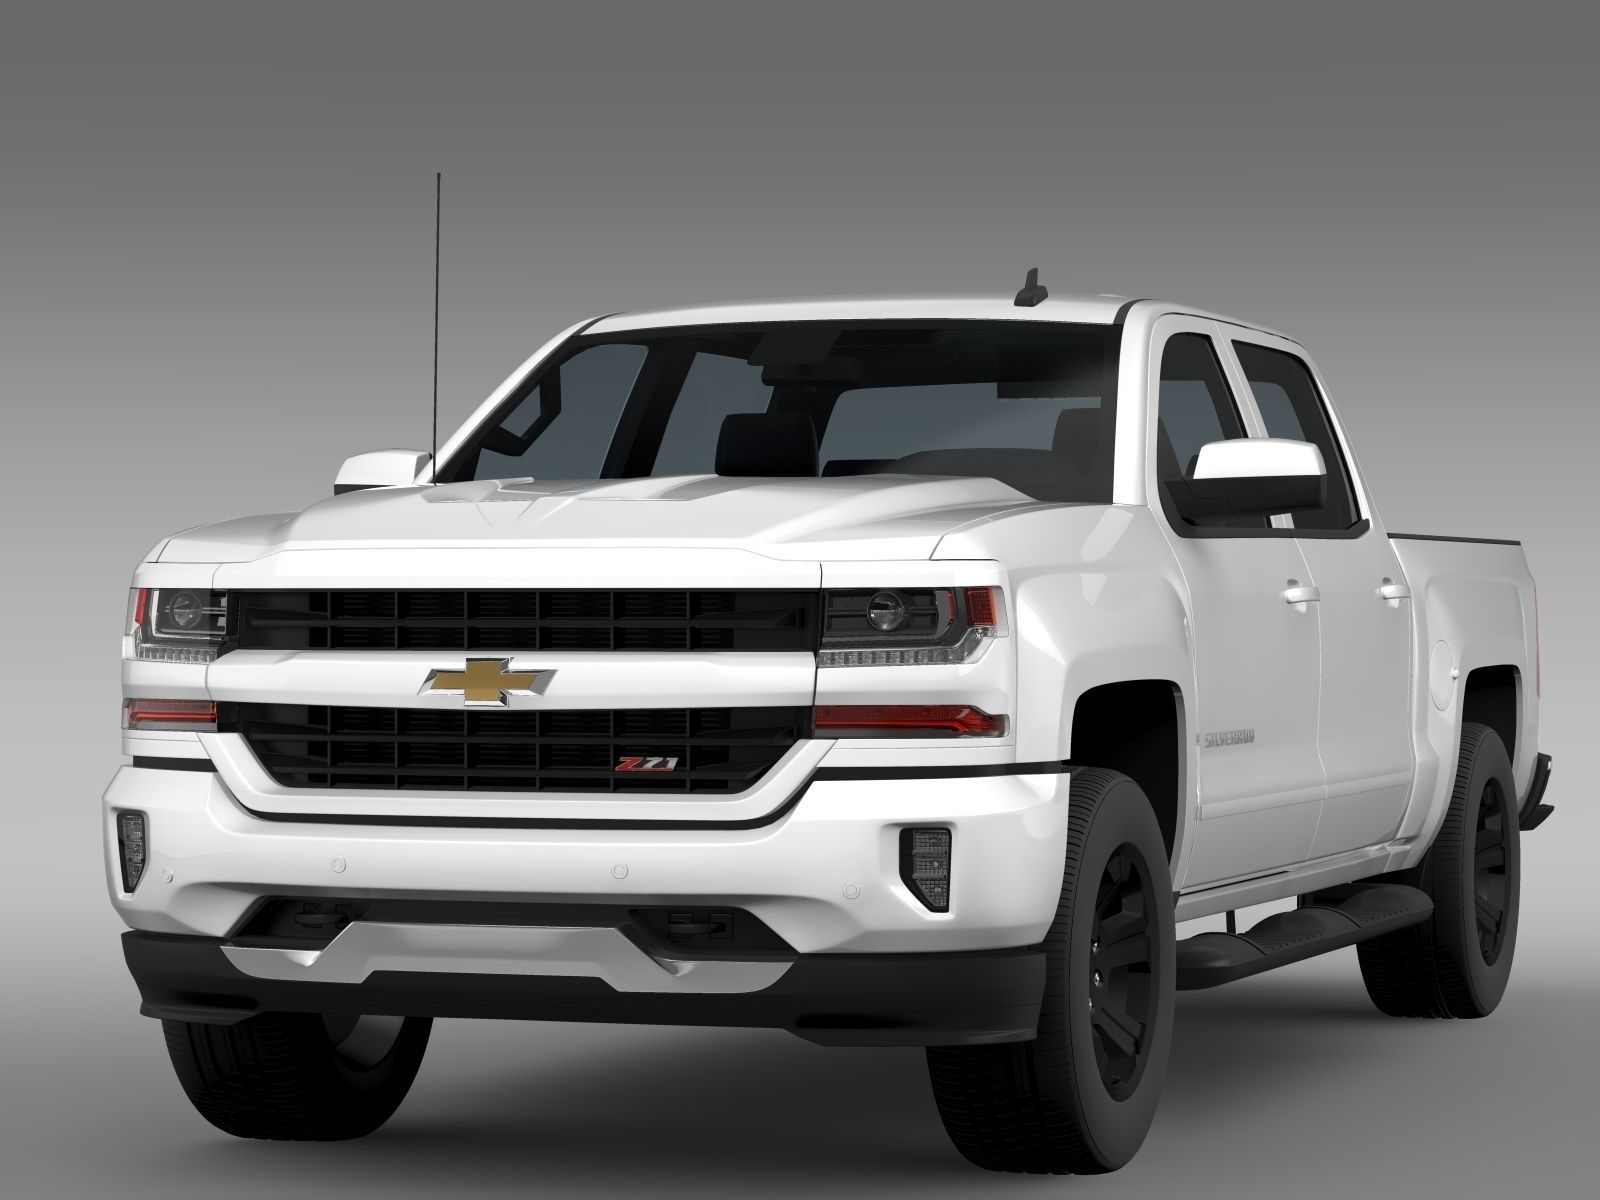 Chevrolet Silverado Lt Z71 Crew Cab Gmtk2 Short Box 2017 3d Model